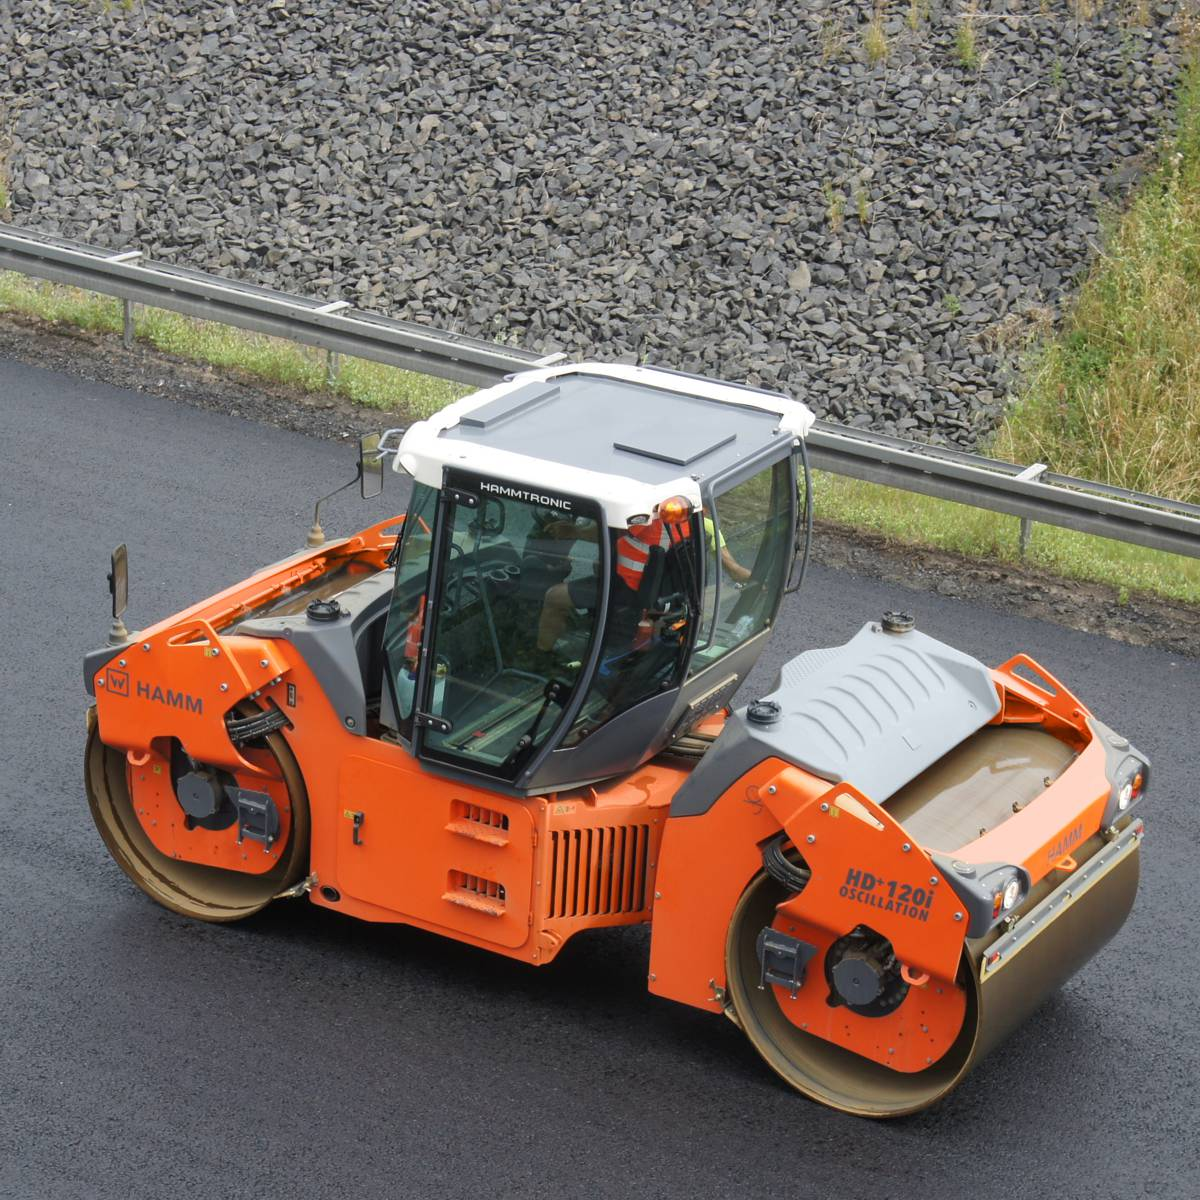 A HAMM HD+ 120i OV tandem roller compacting the surface course of a busy highway